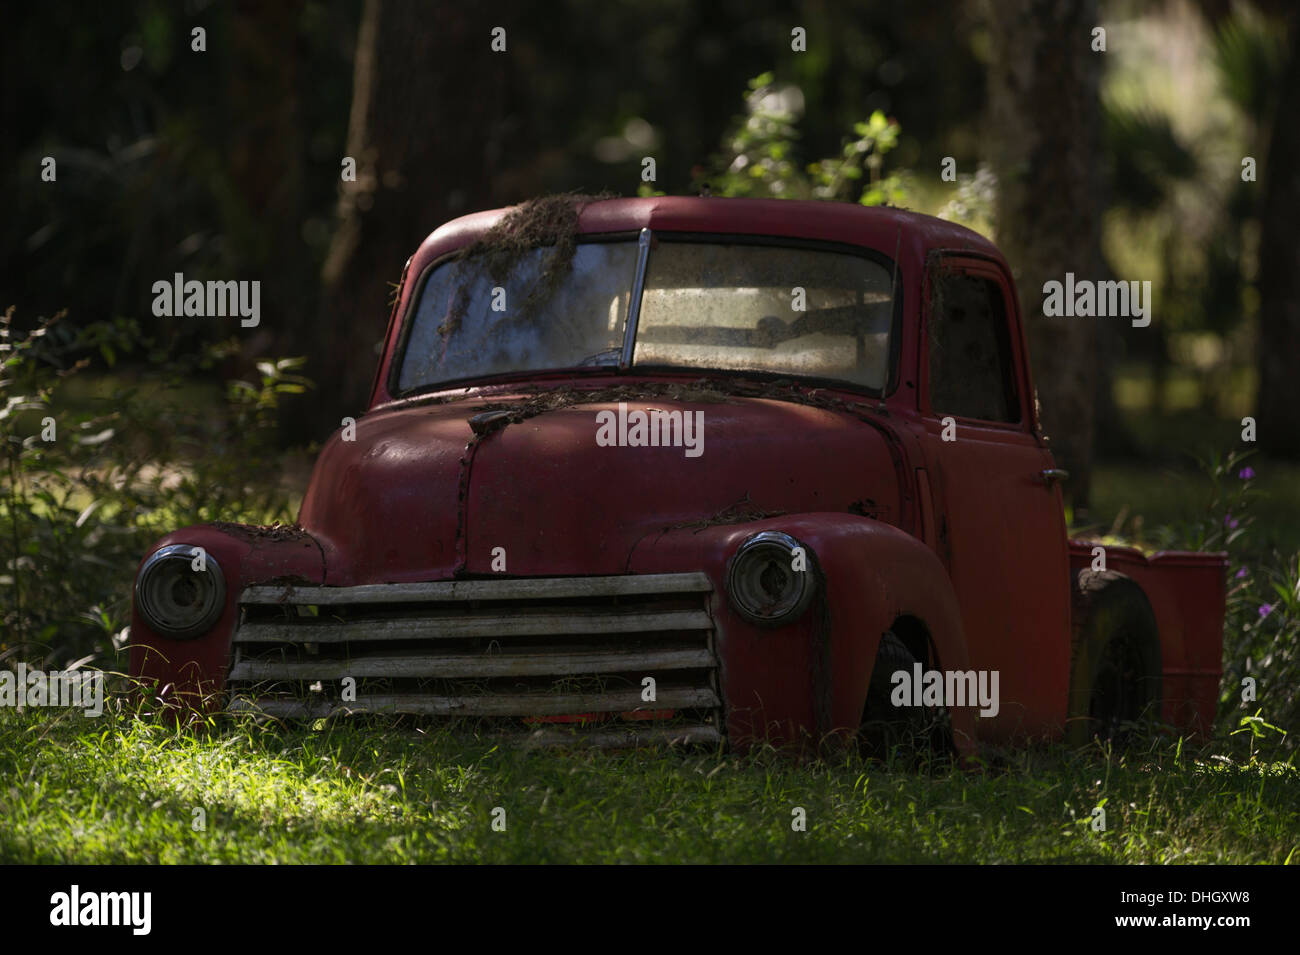 An old Chevrolet pickup truck being use as decoration on private ...